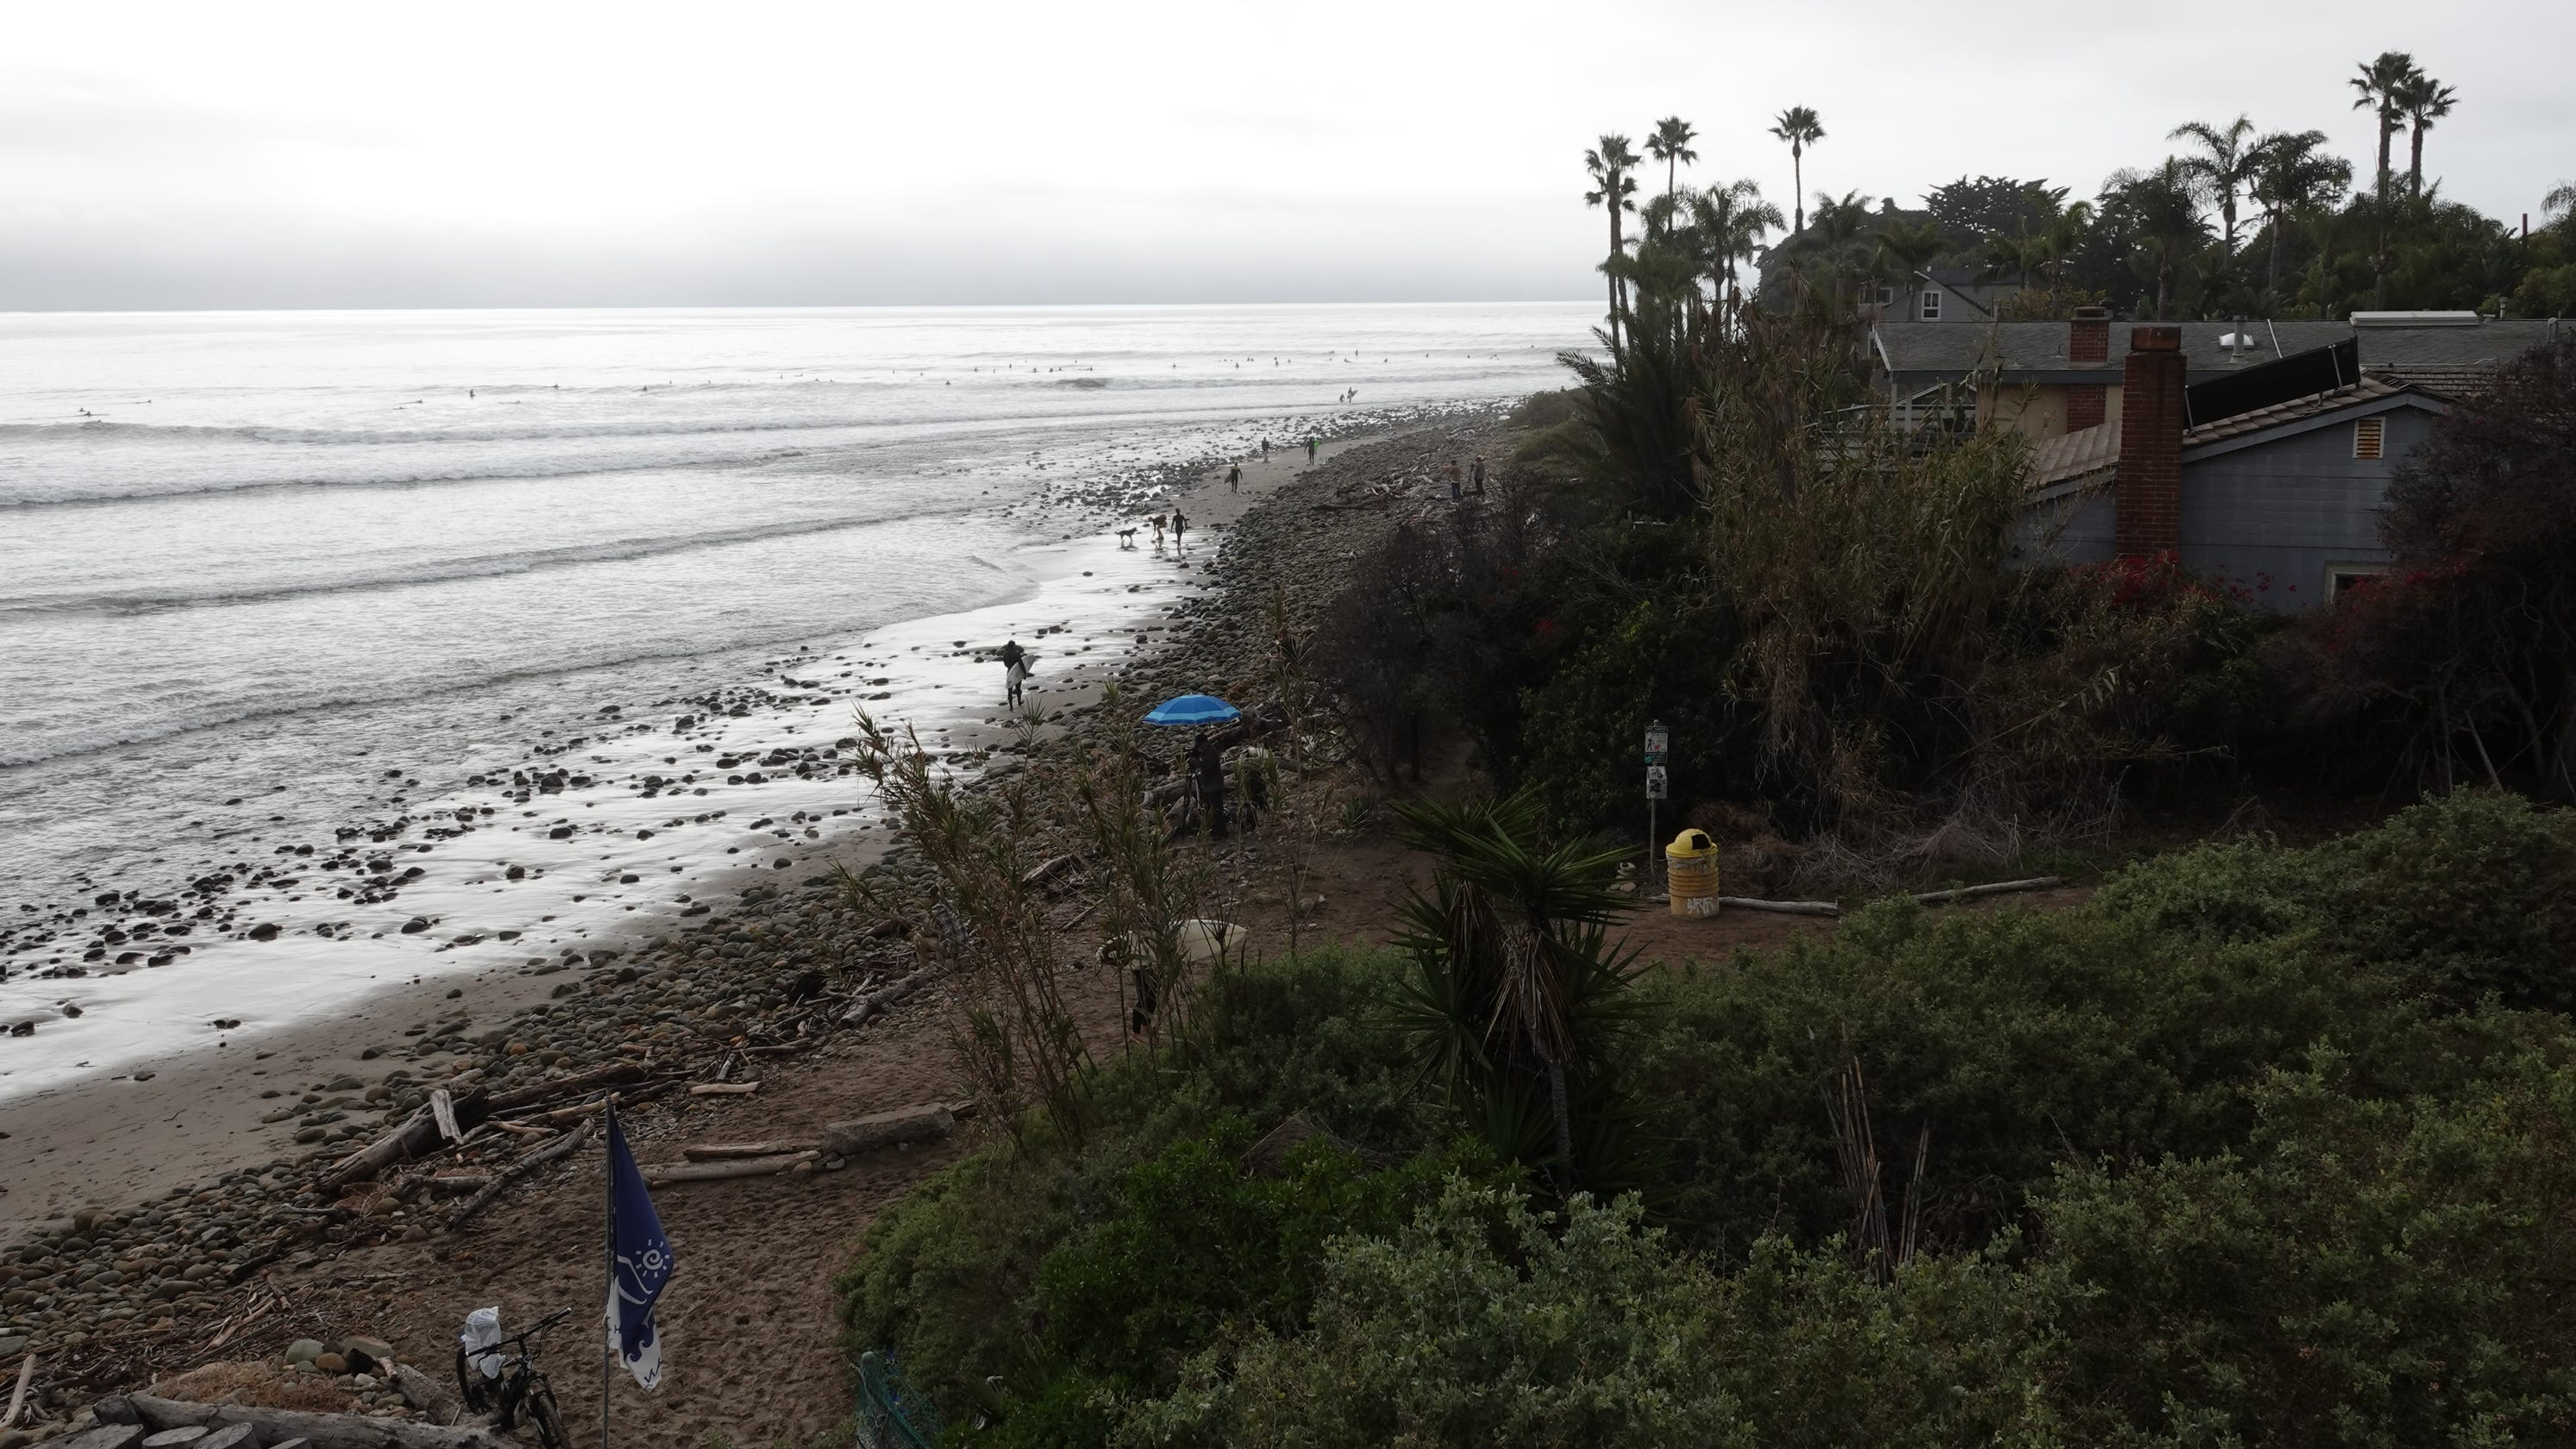 Ocean rescue at Rincon Point includes call for helicopter assistance